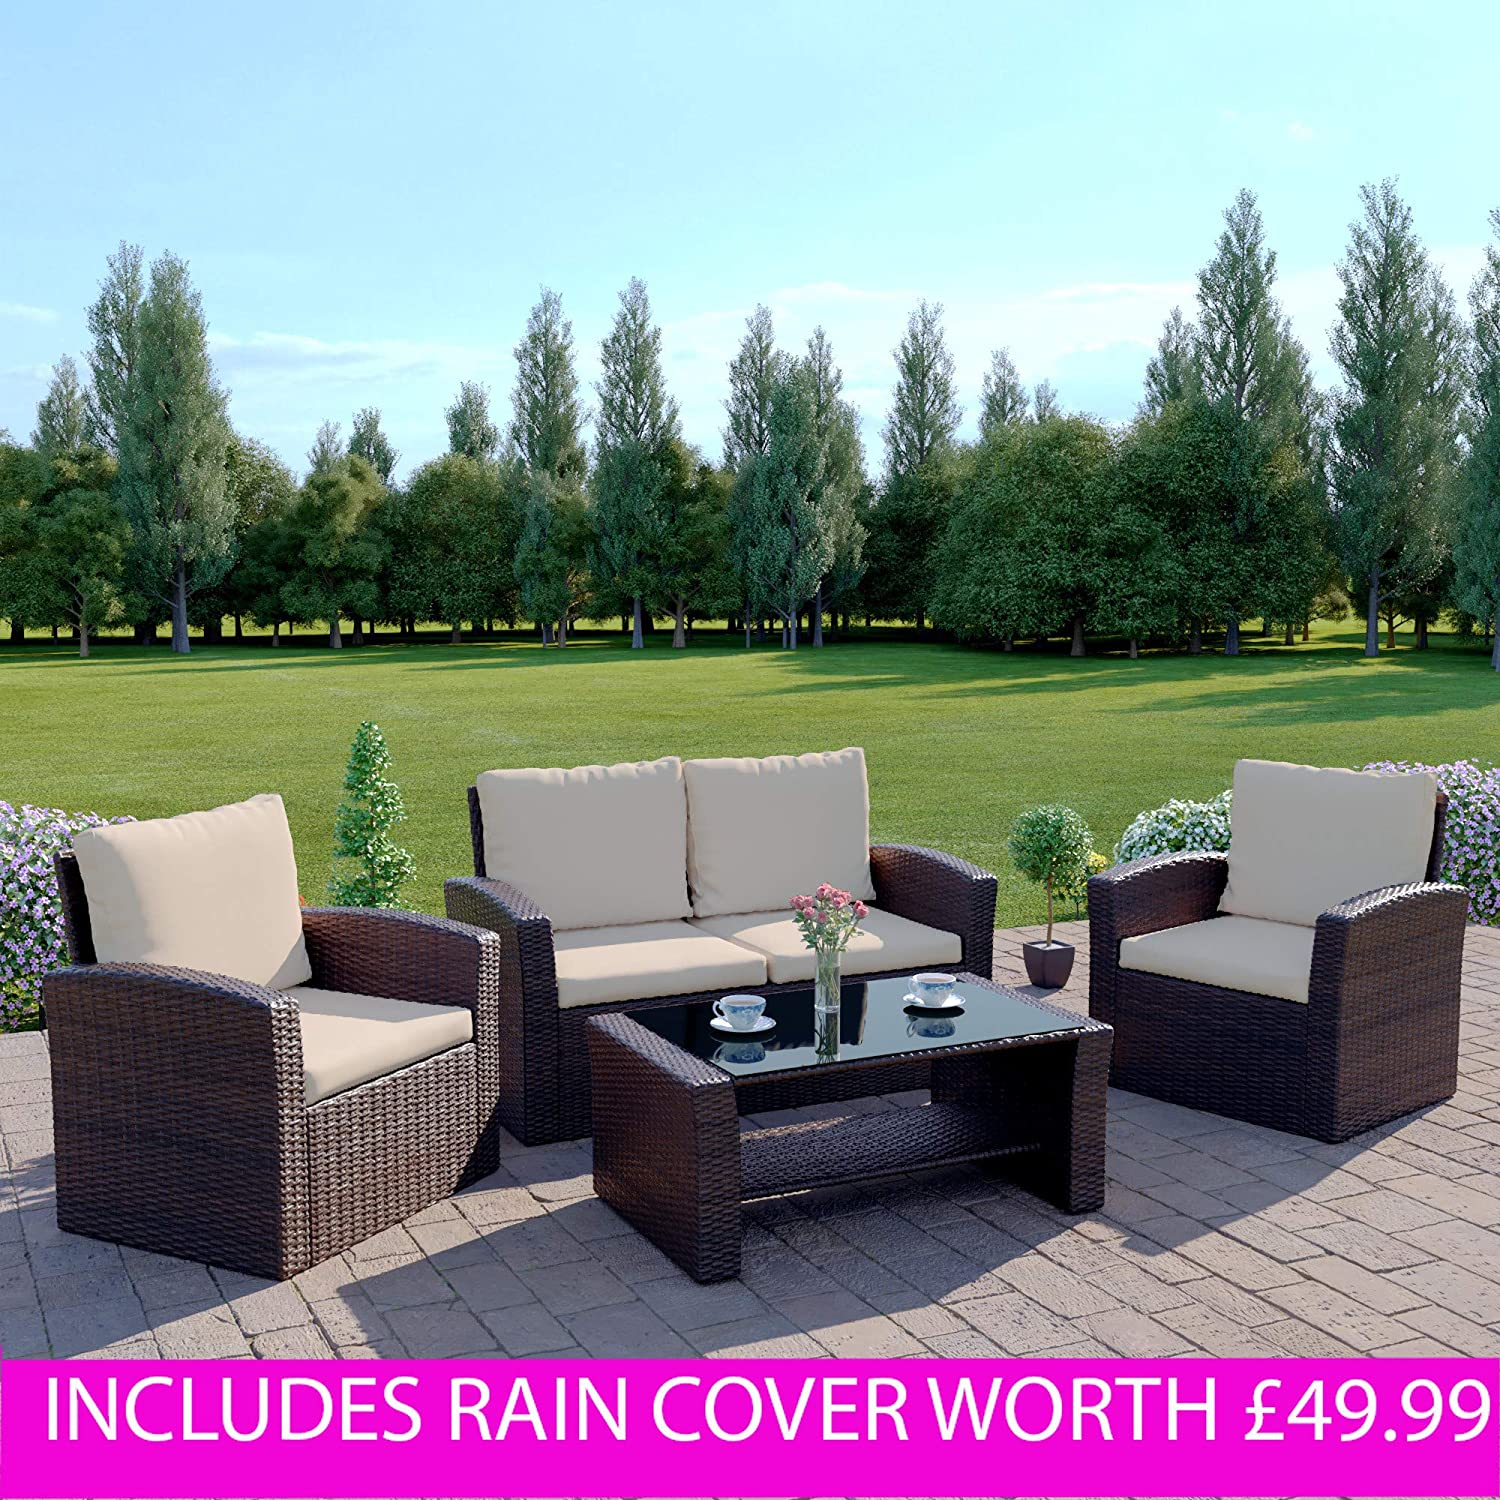 Incredible Abreo Brown Rattan Garden Furniture Sofa Set Wicker Weave 4 Seater Patio Conservatory Luxury Home Remodeling Inspirations Genioncuboardxyz